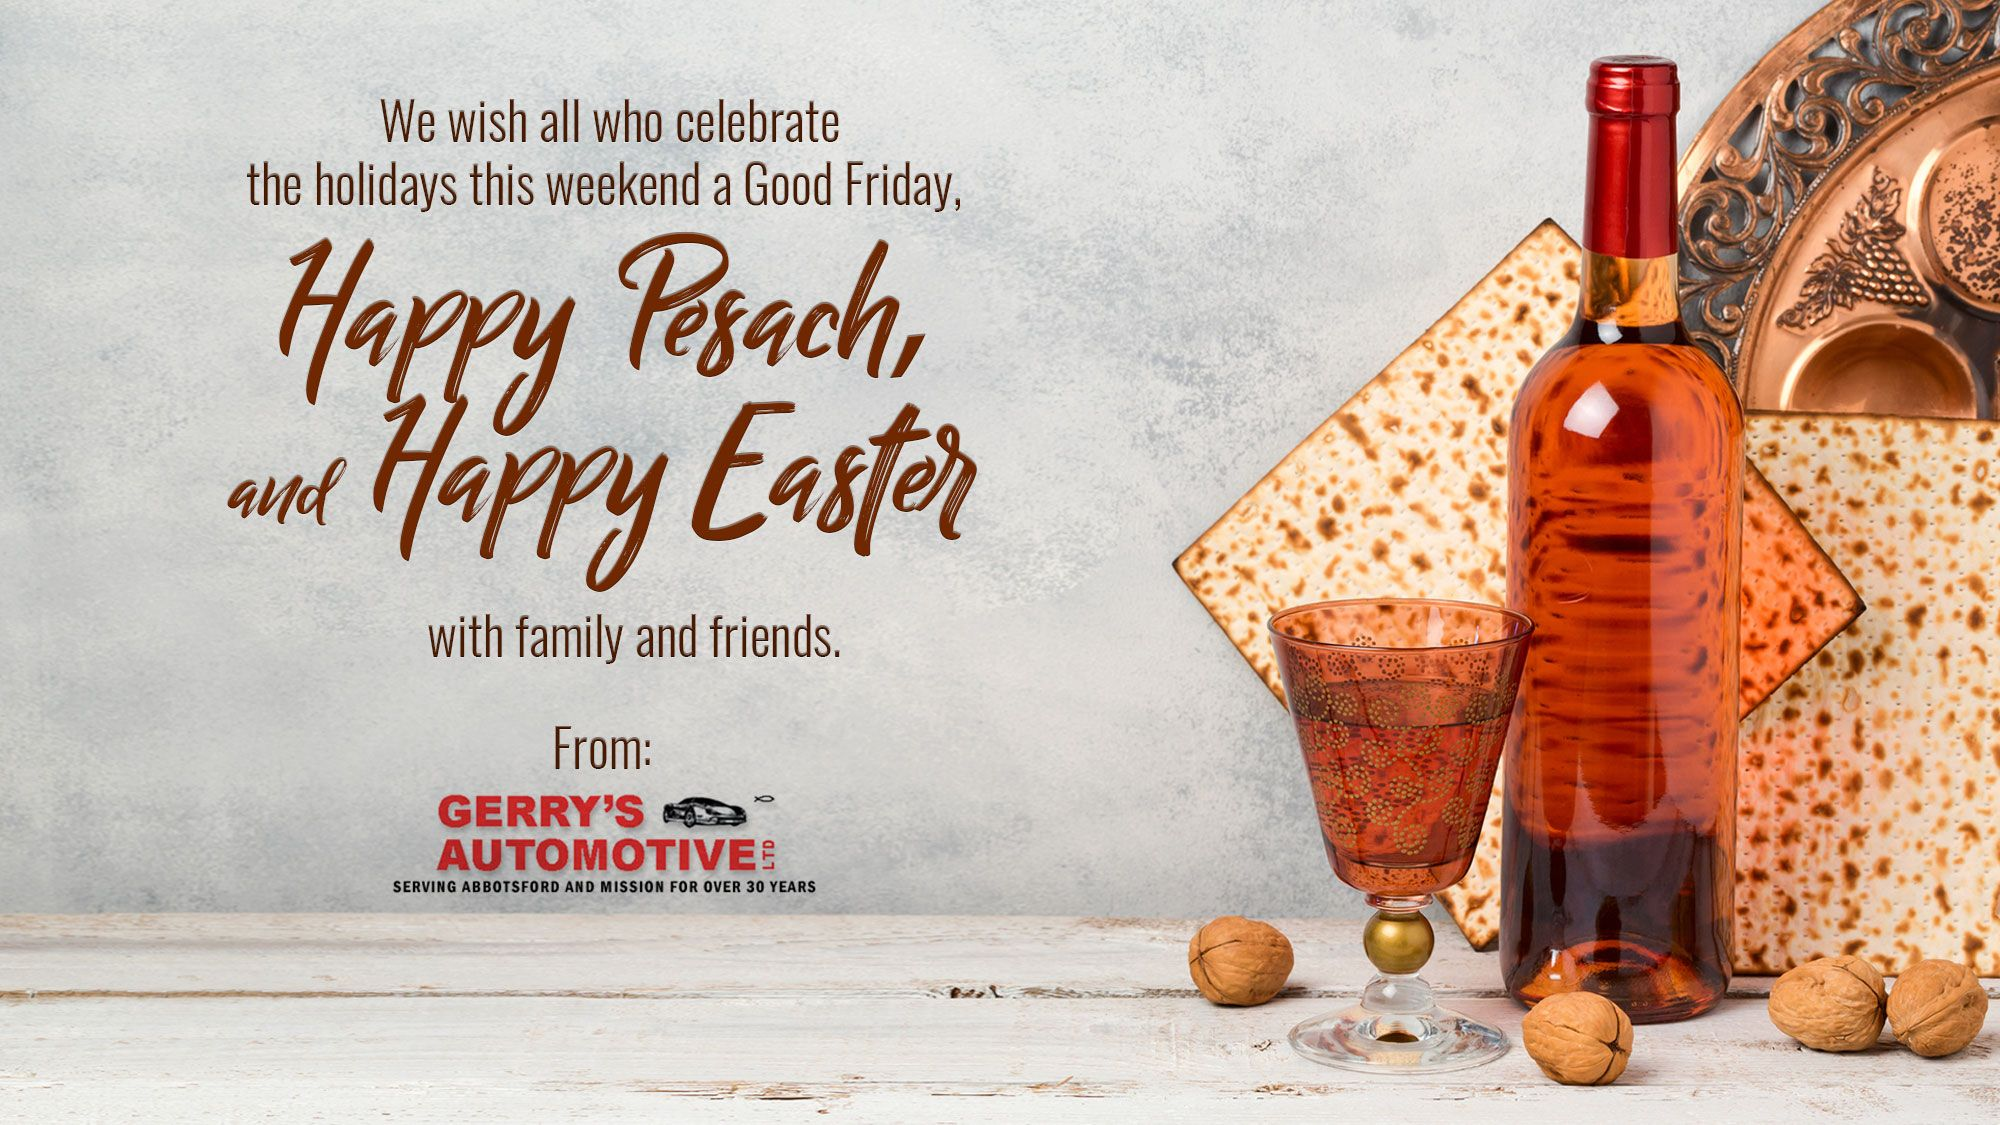 Pin by gerrys automotive ltd on images good friday